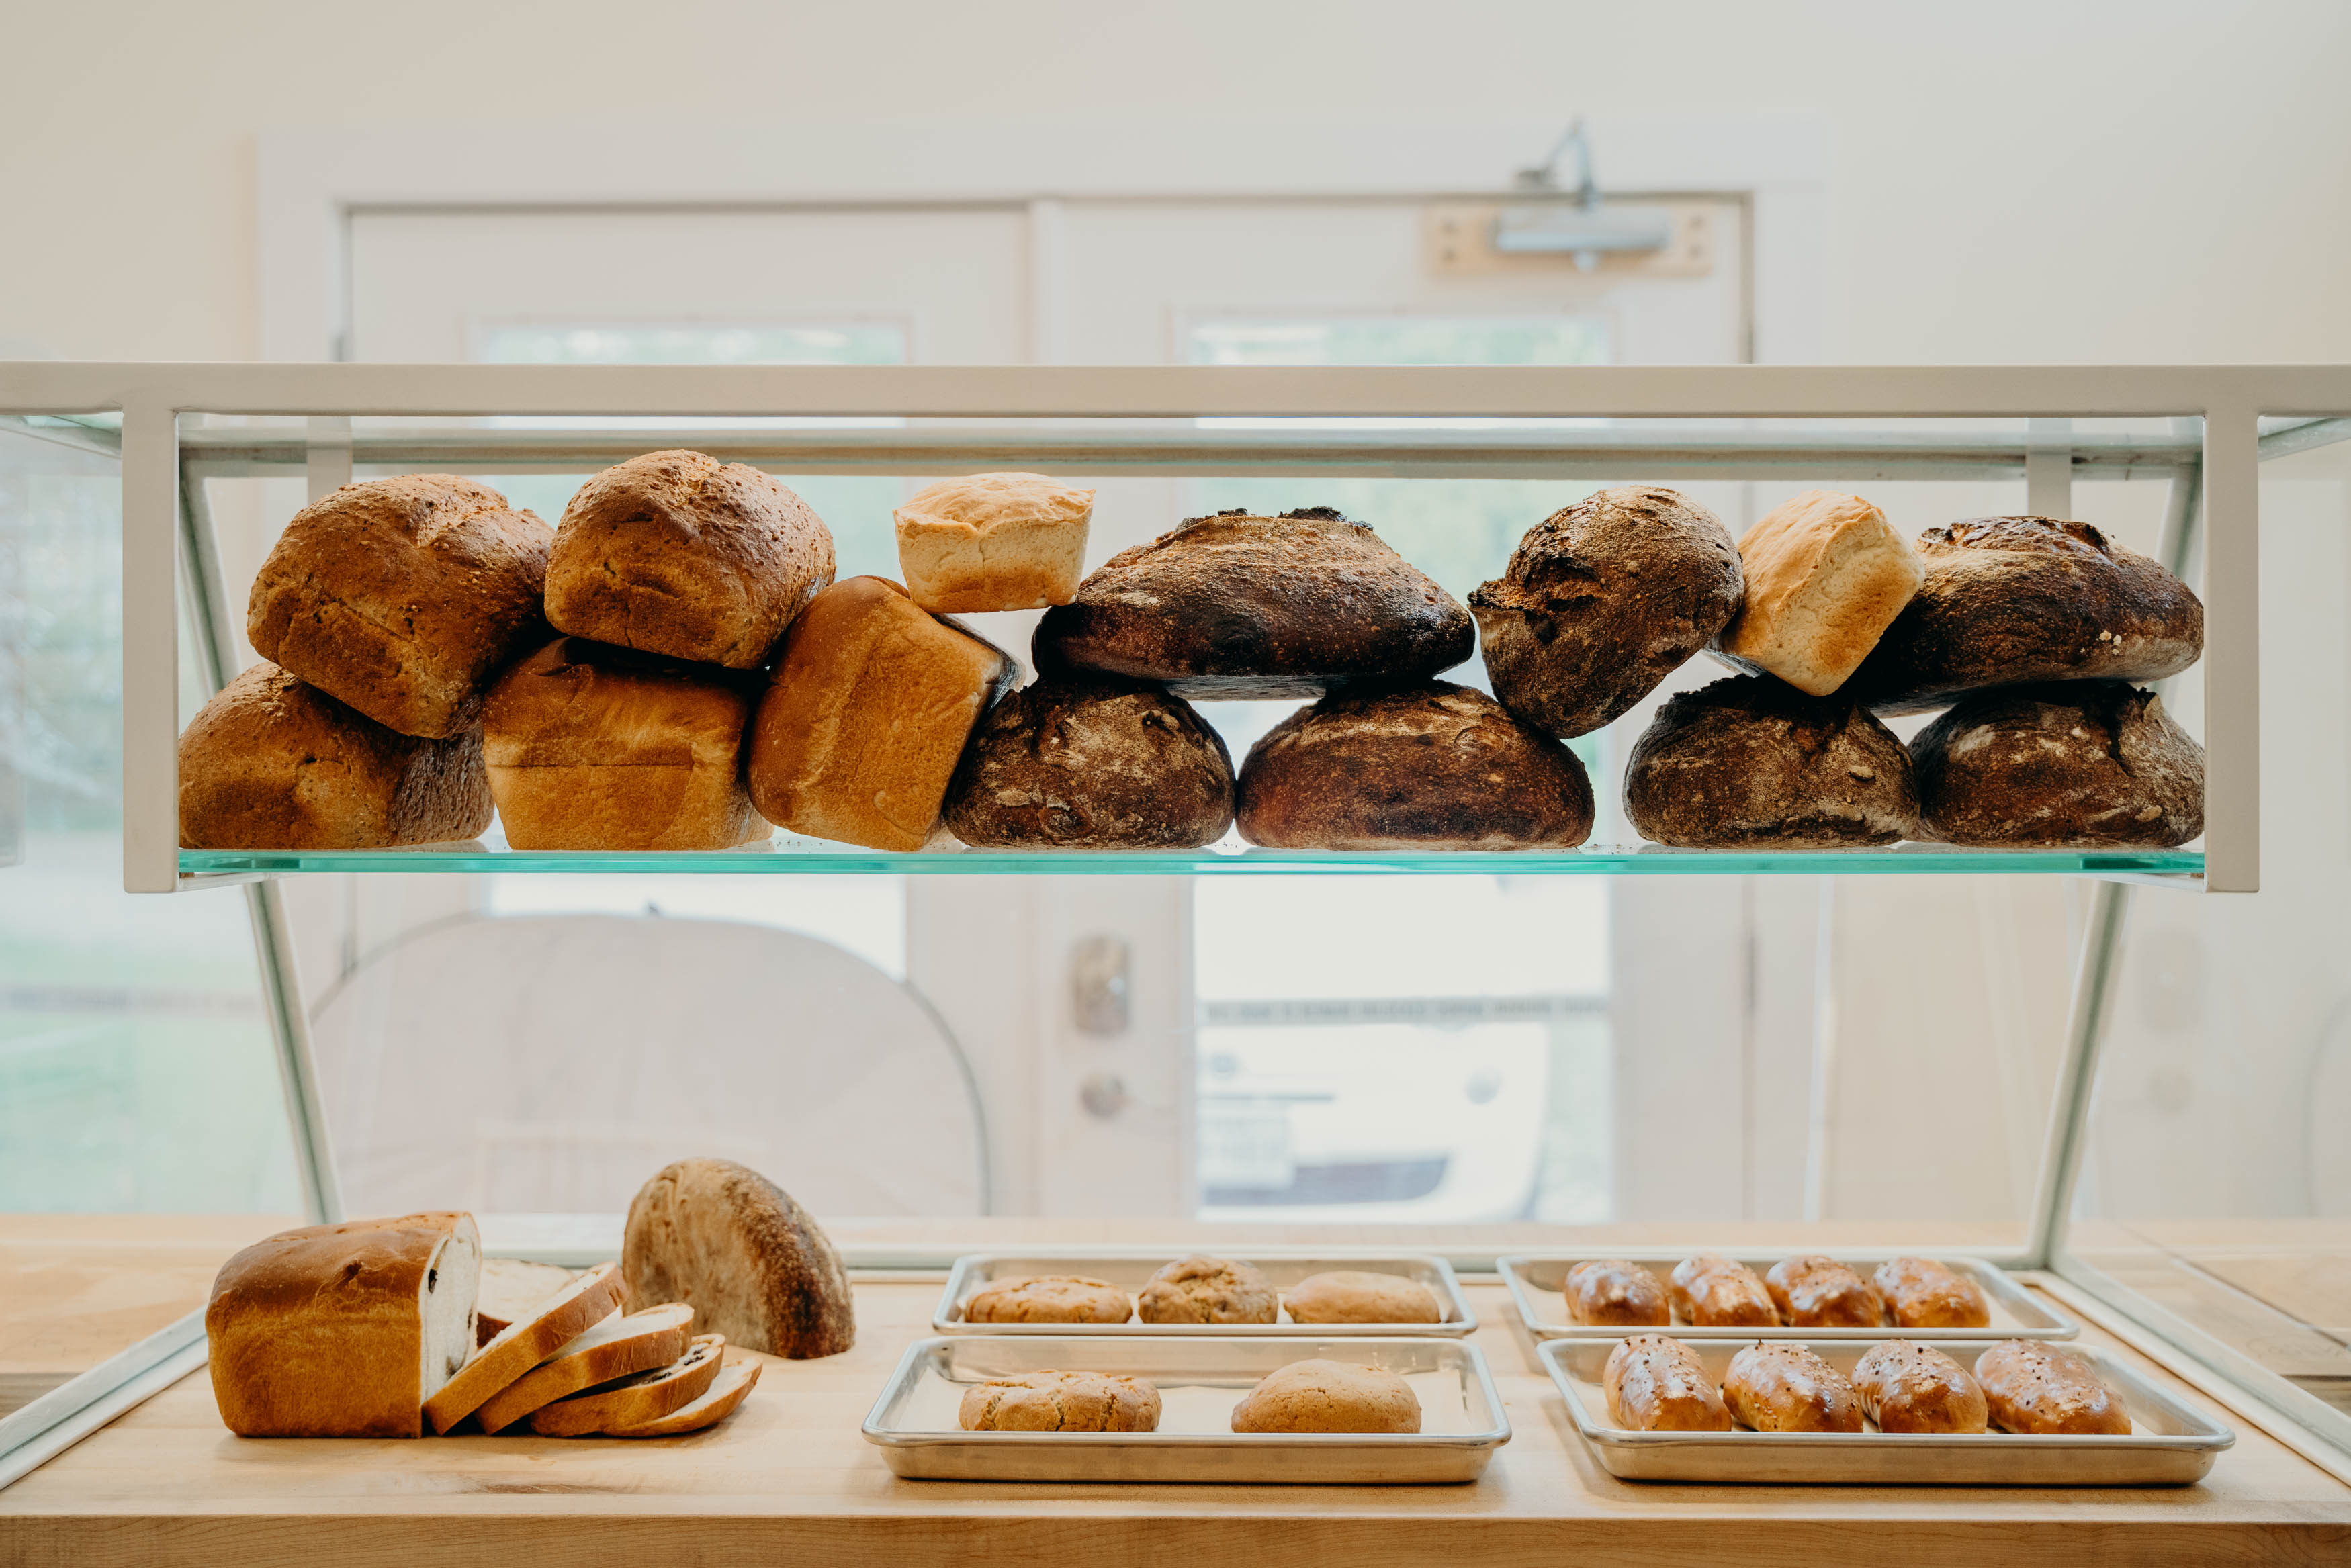 ThoroughBread's breads and pastries